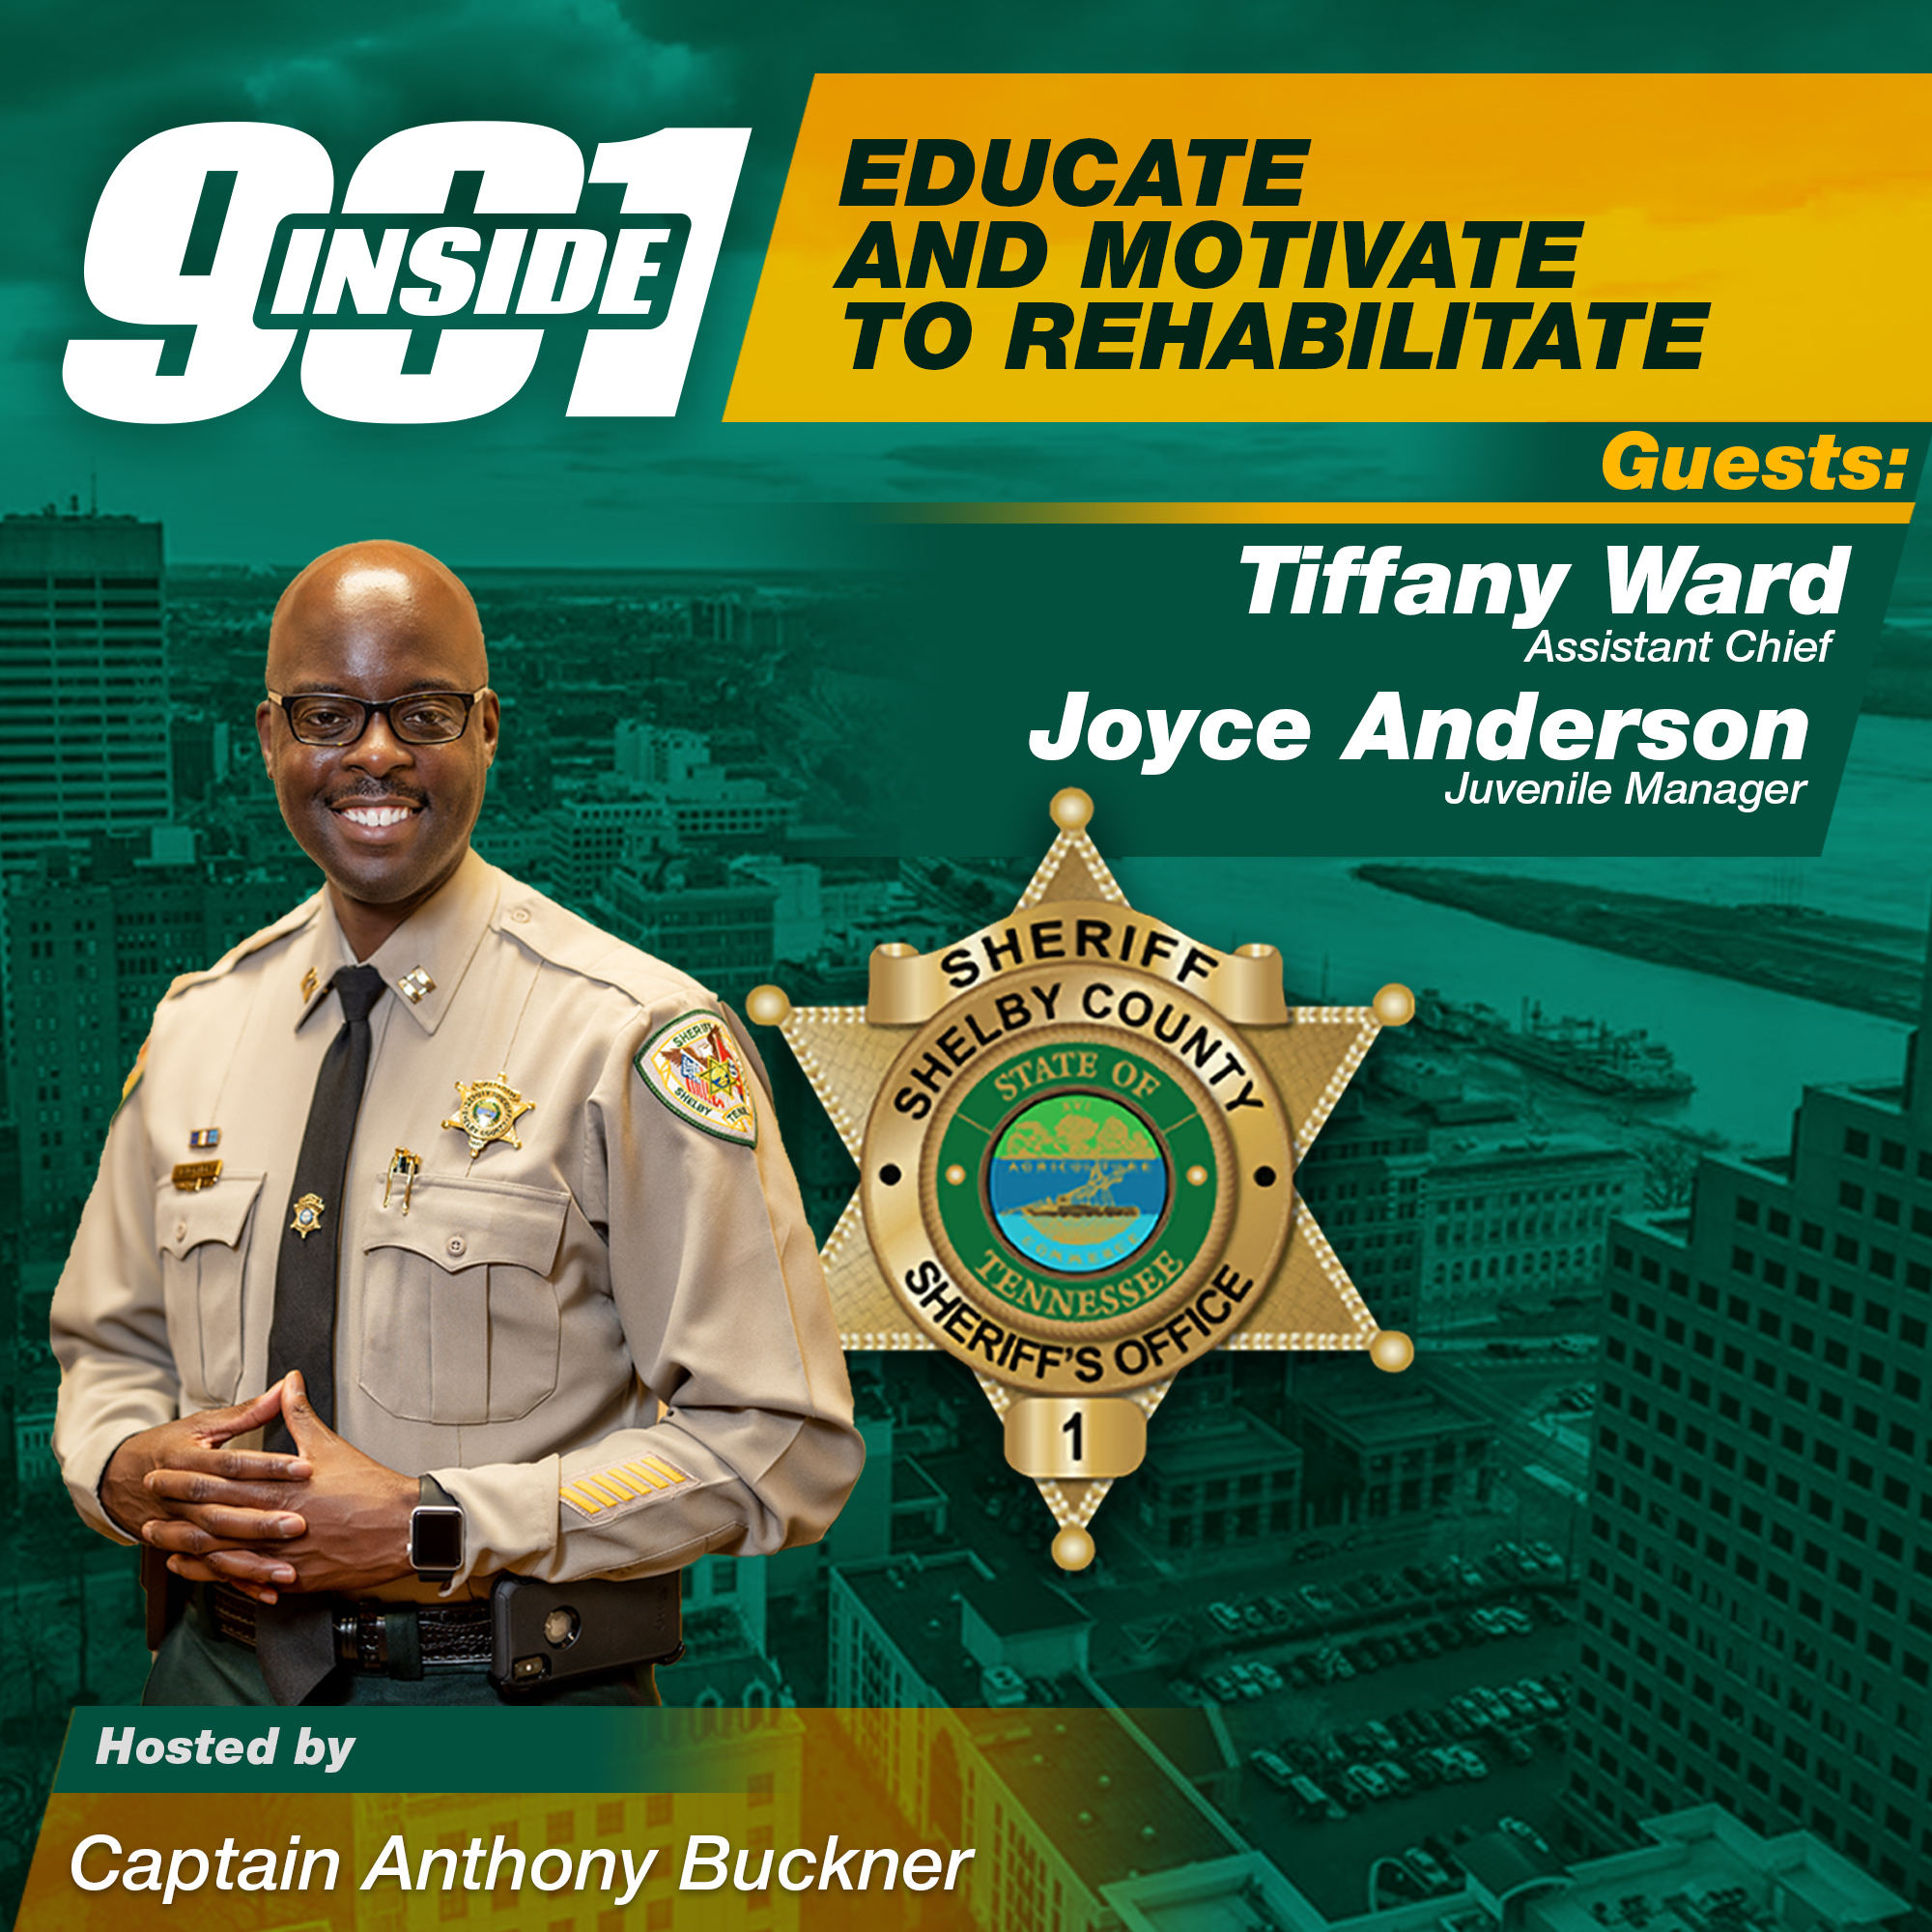 Educate and Motivate to Rehabilitate w/Assistant Chief Tiffany Ward and Programs Manager Joyce Anderson l Inside 901 Podcast l KUDZUKIAN